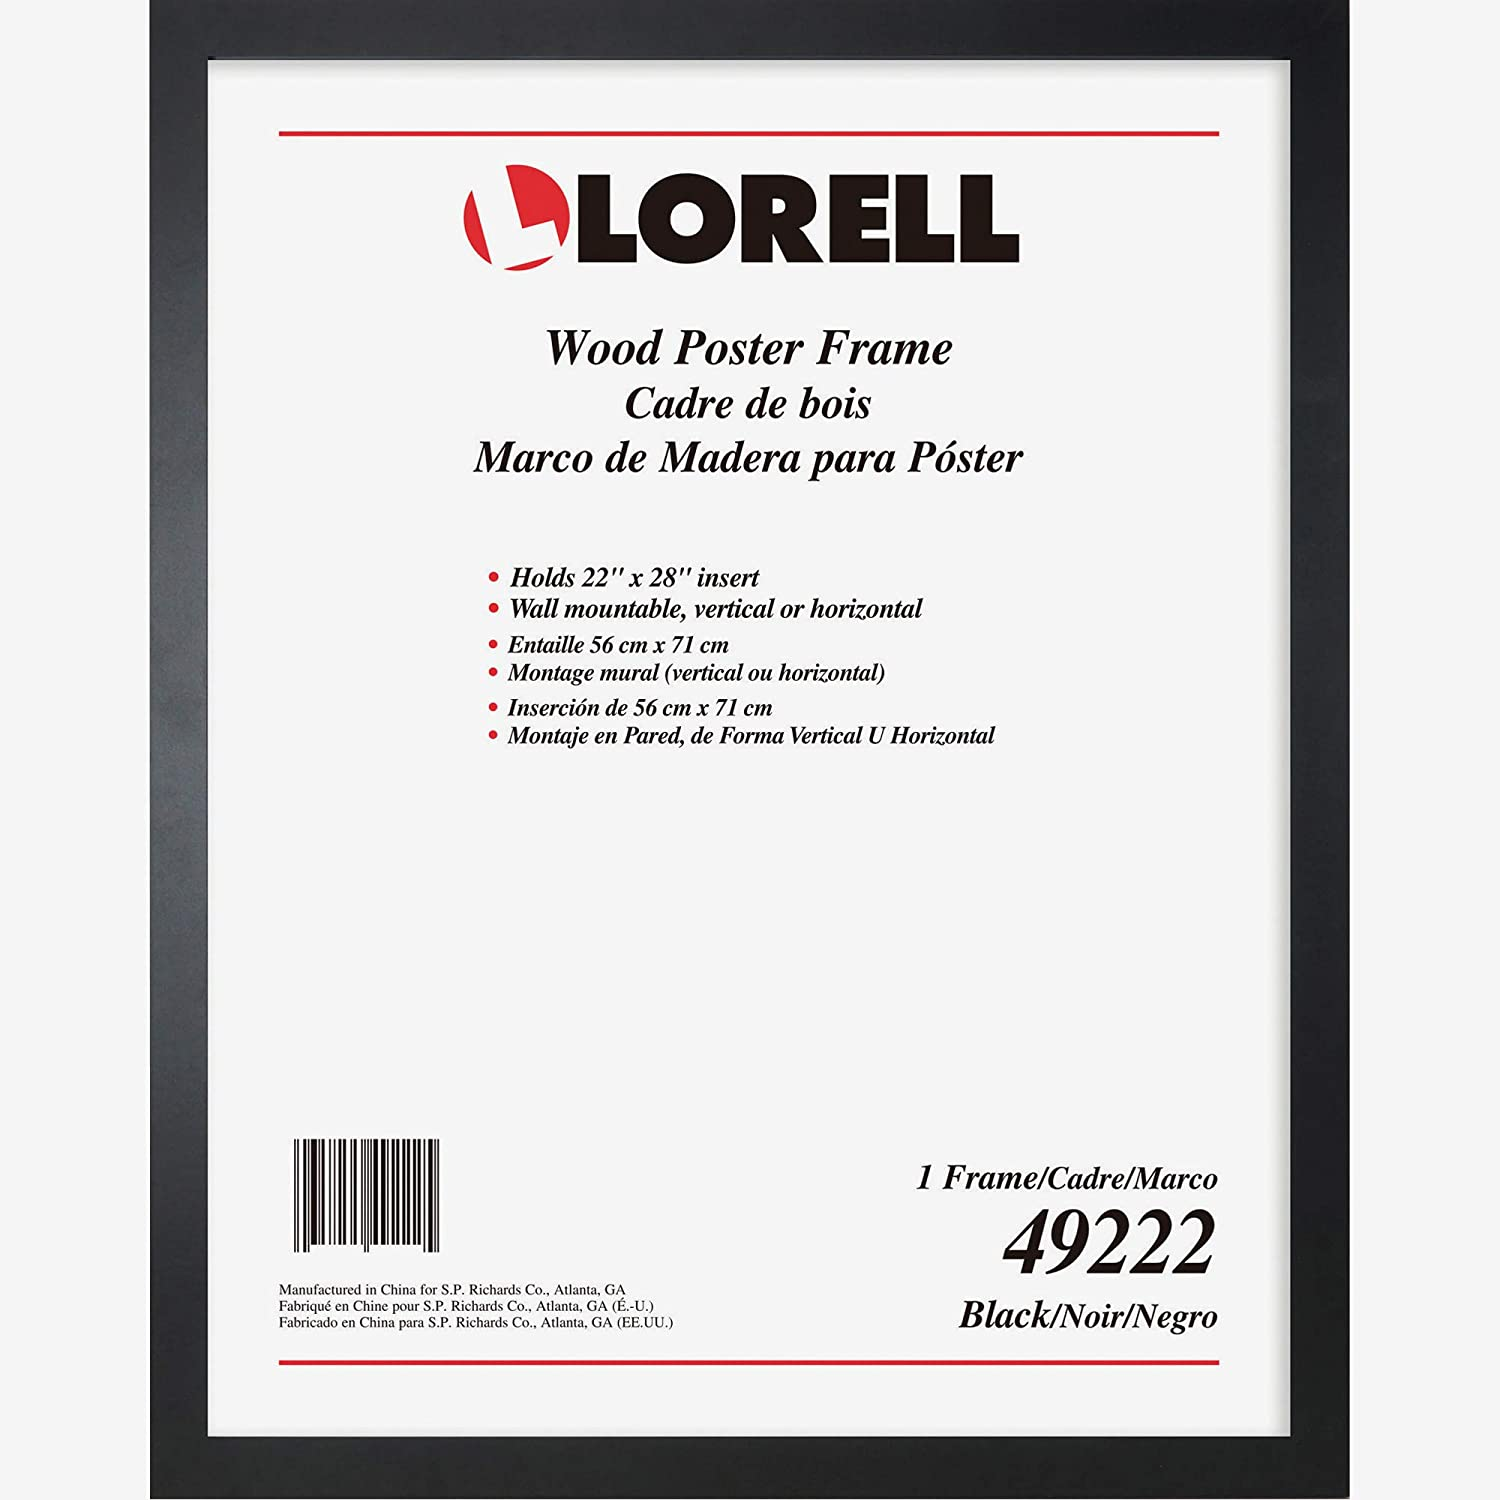 Lorell Solid Wood Poster Frame, 22